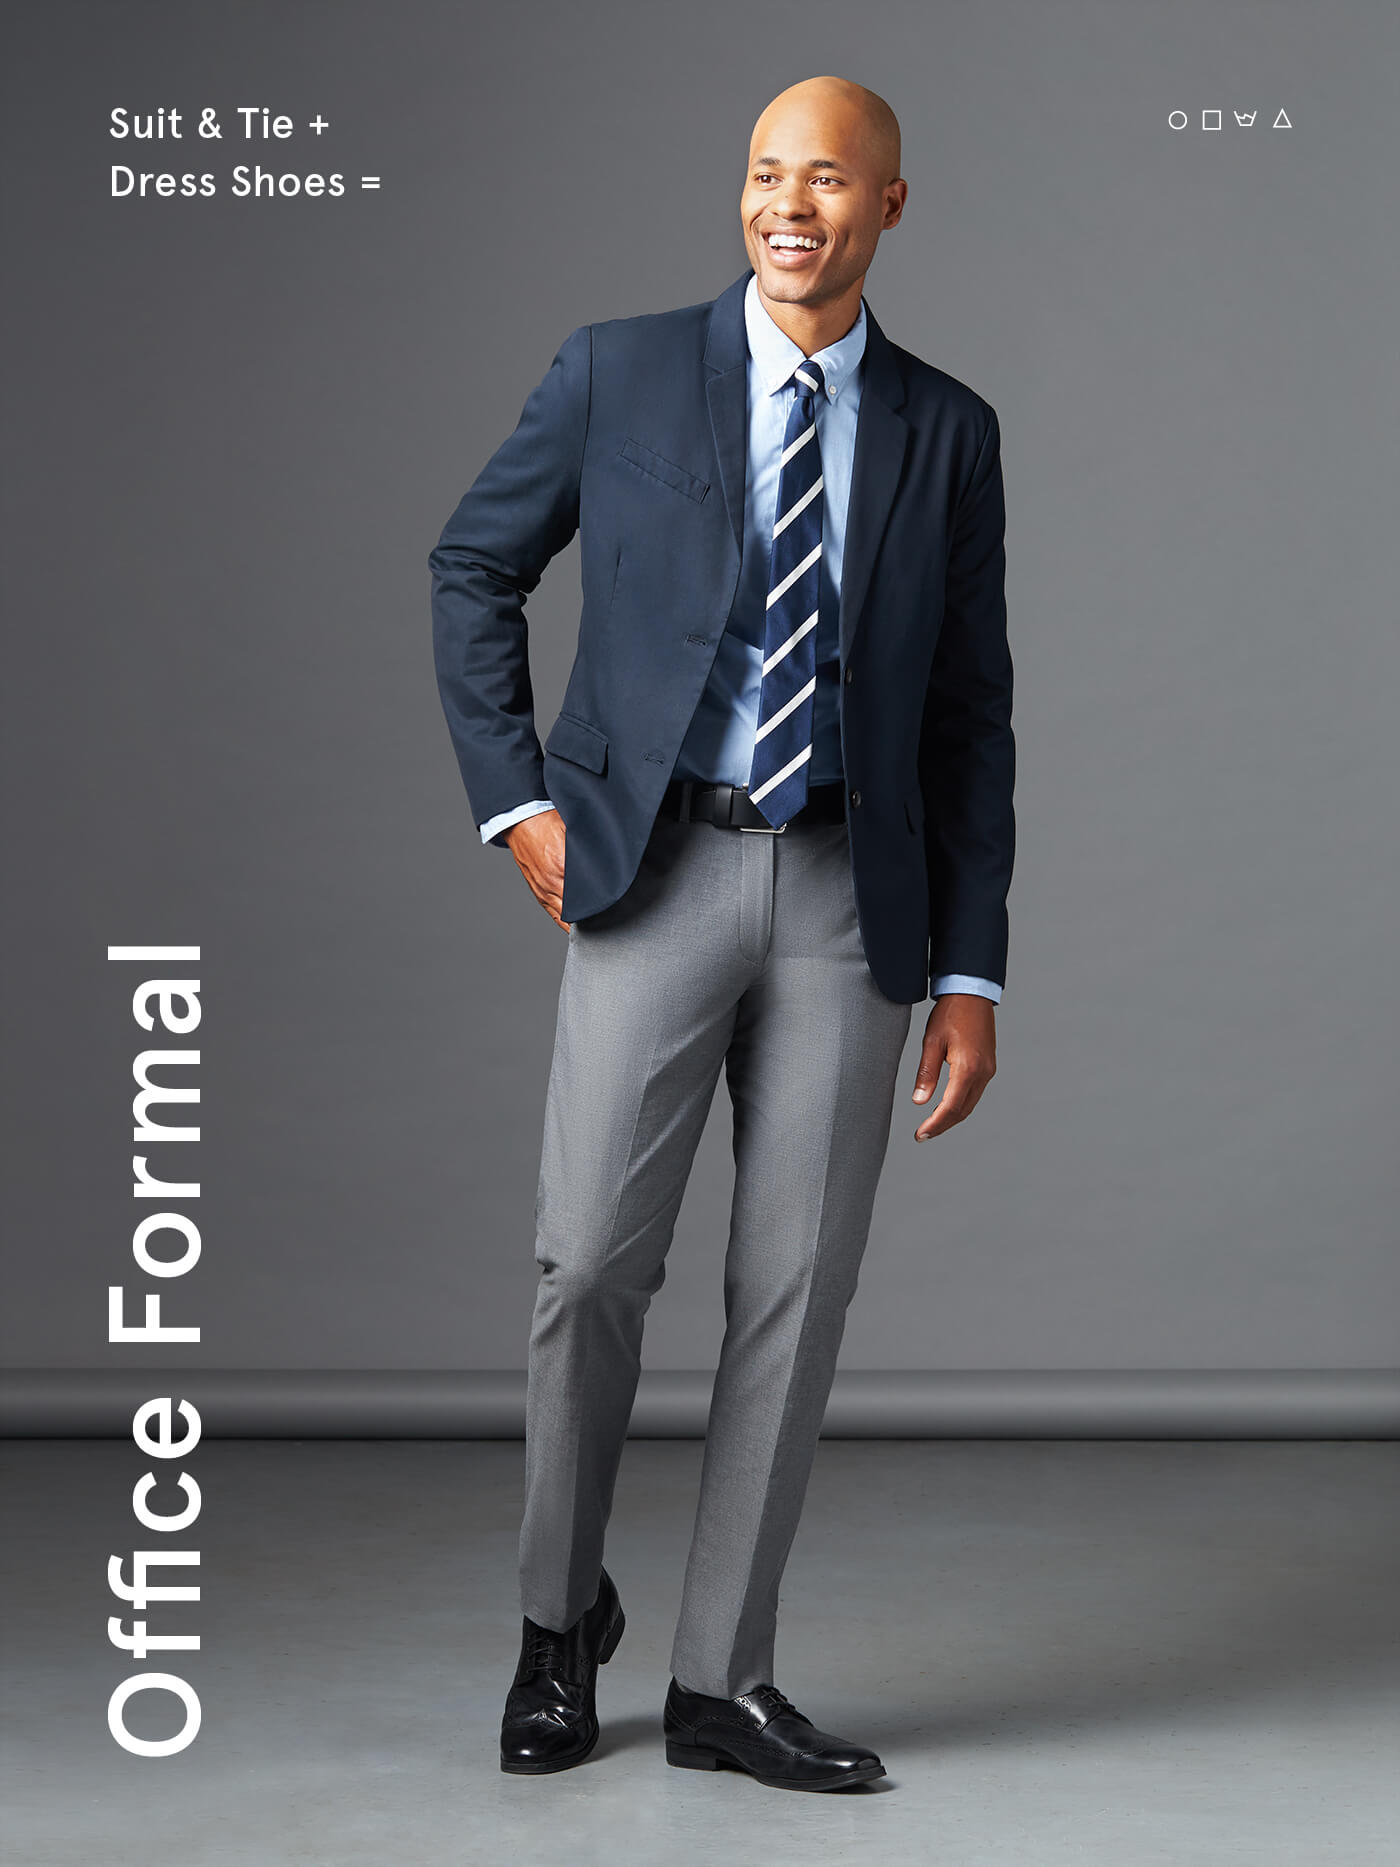 579b42f82f7 what is office formal  suit with a tie and dress shoes